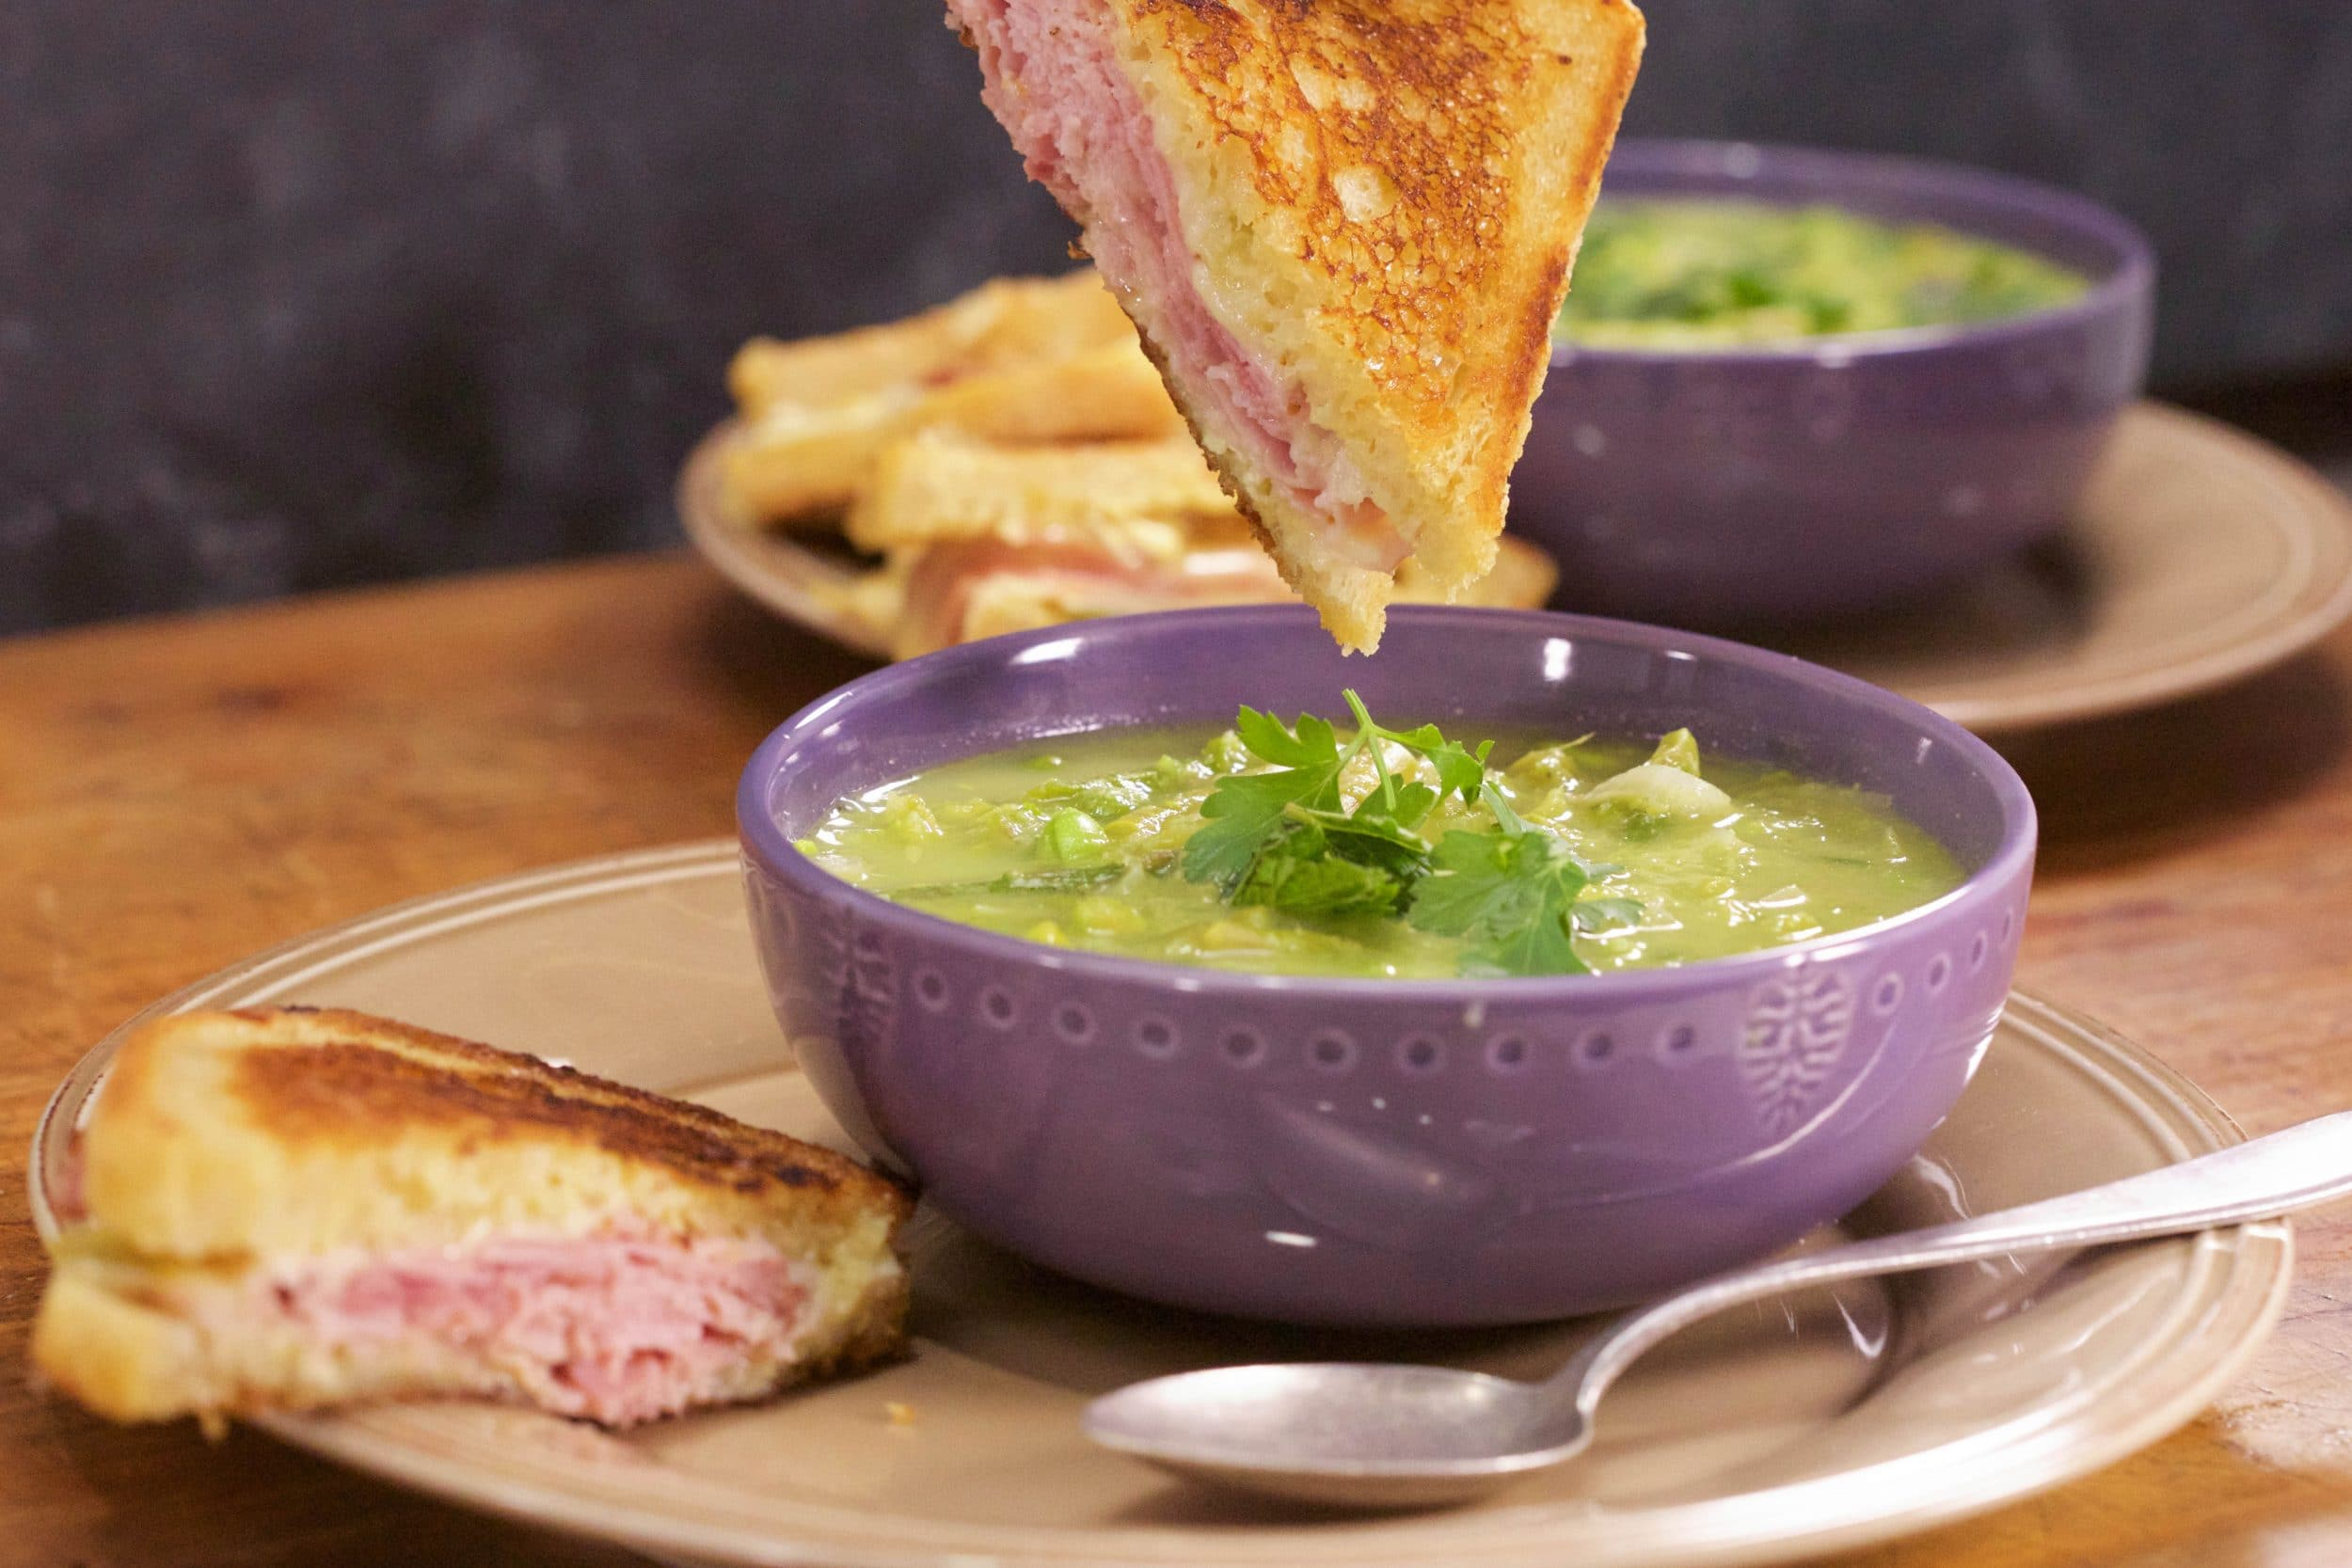 Asparagus and Pea Spring Soup With Grilled Ham 'N Cheese